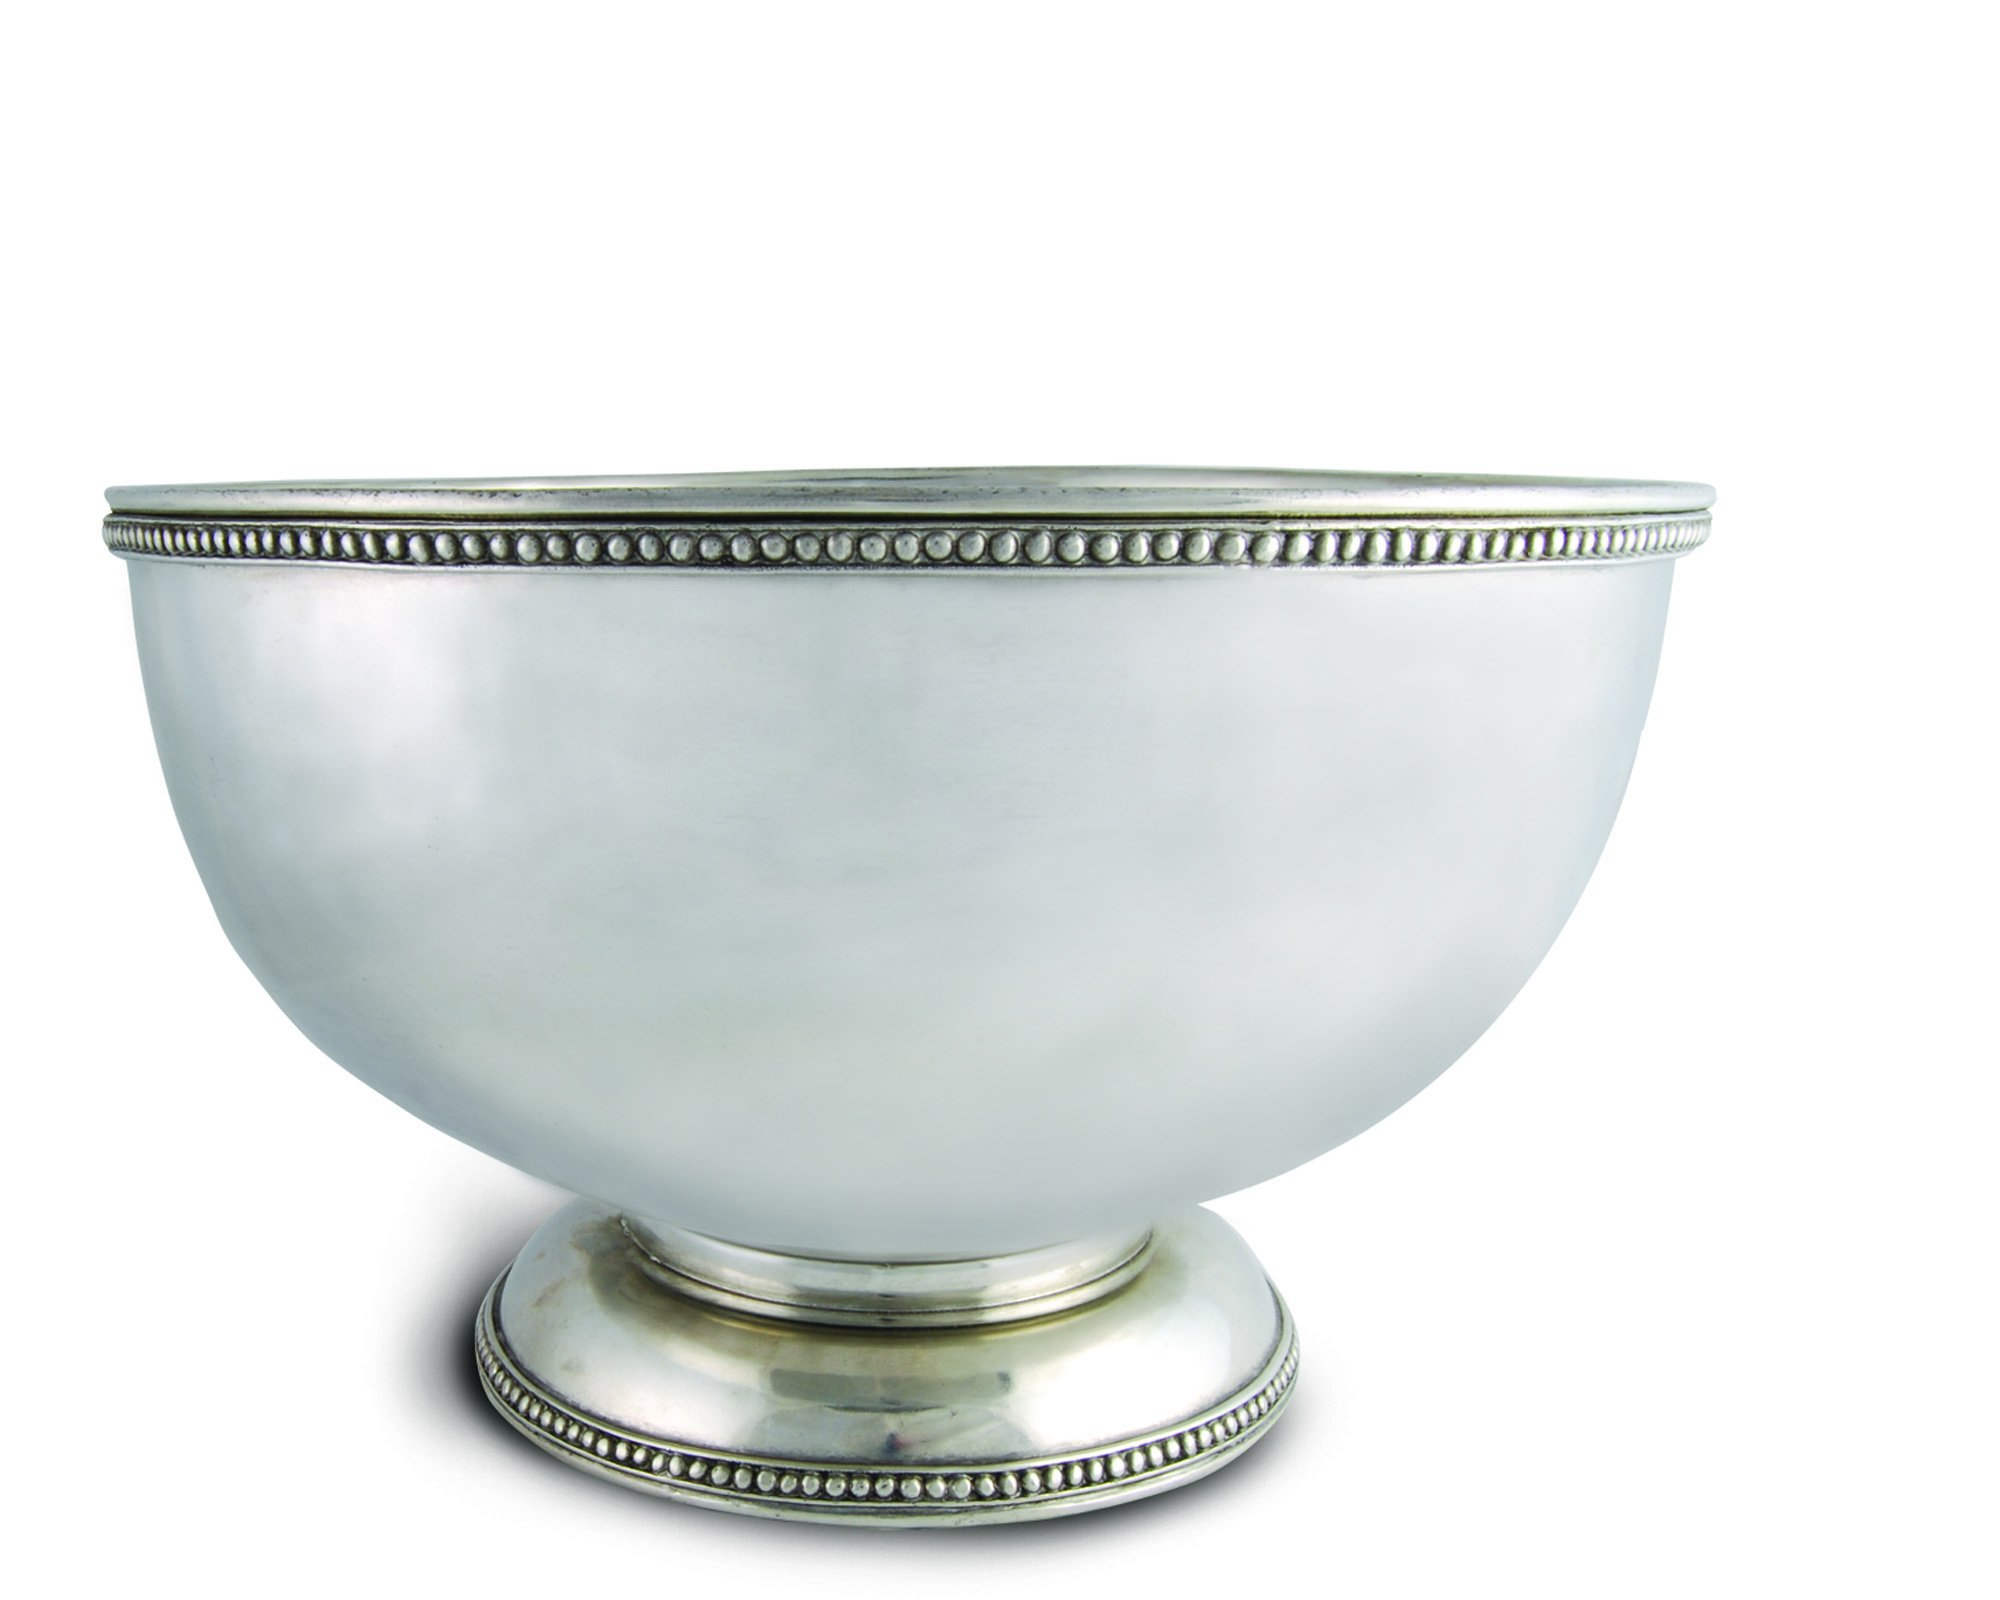 Vagabond House Pewter Medici Bead Ice Tub/Punch Bowl 18.5'' Wide x 11'' Tall